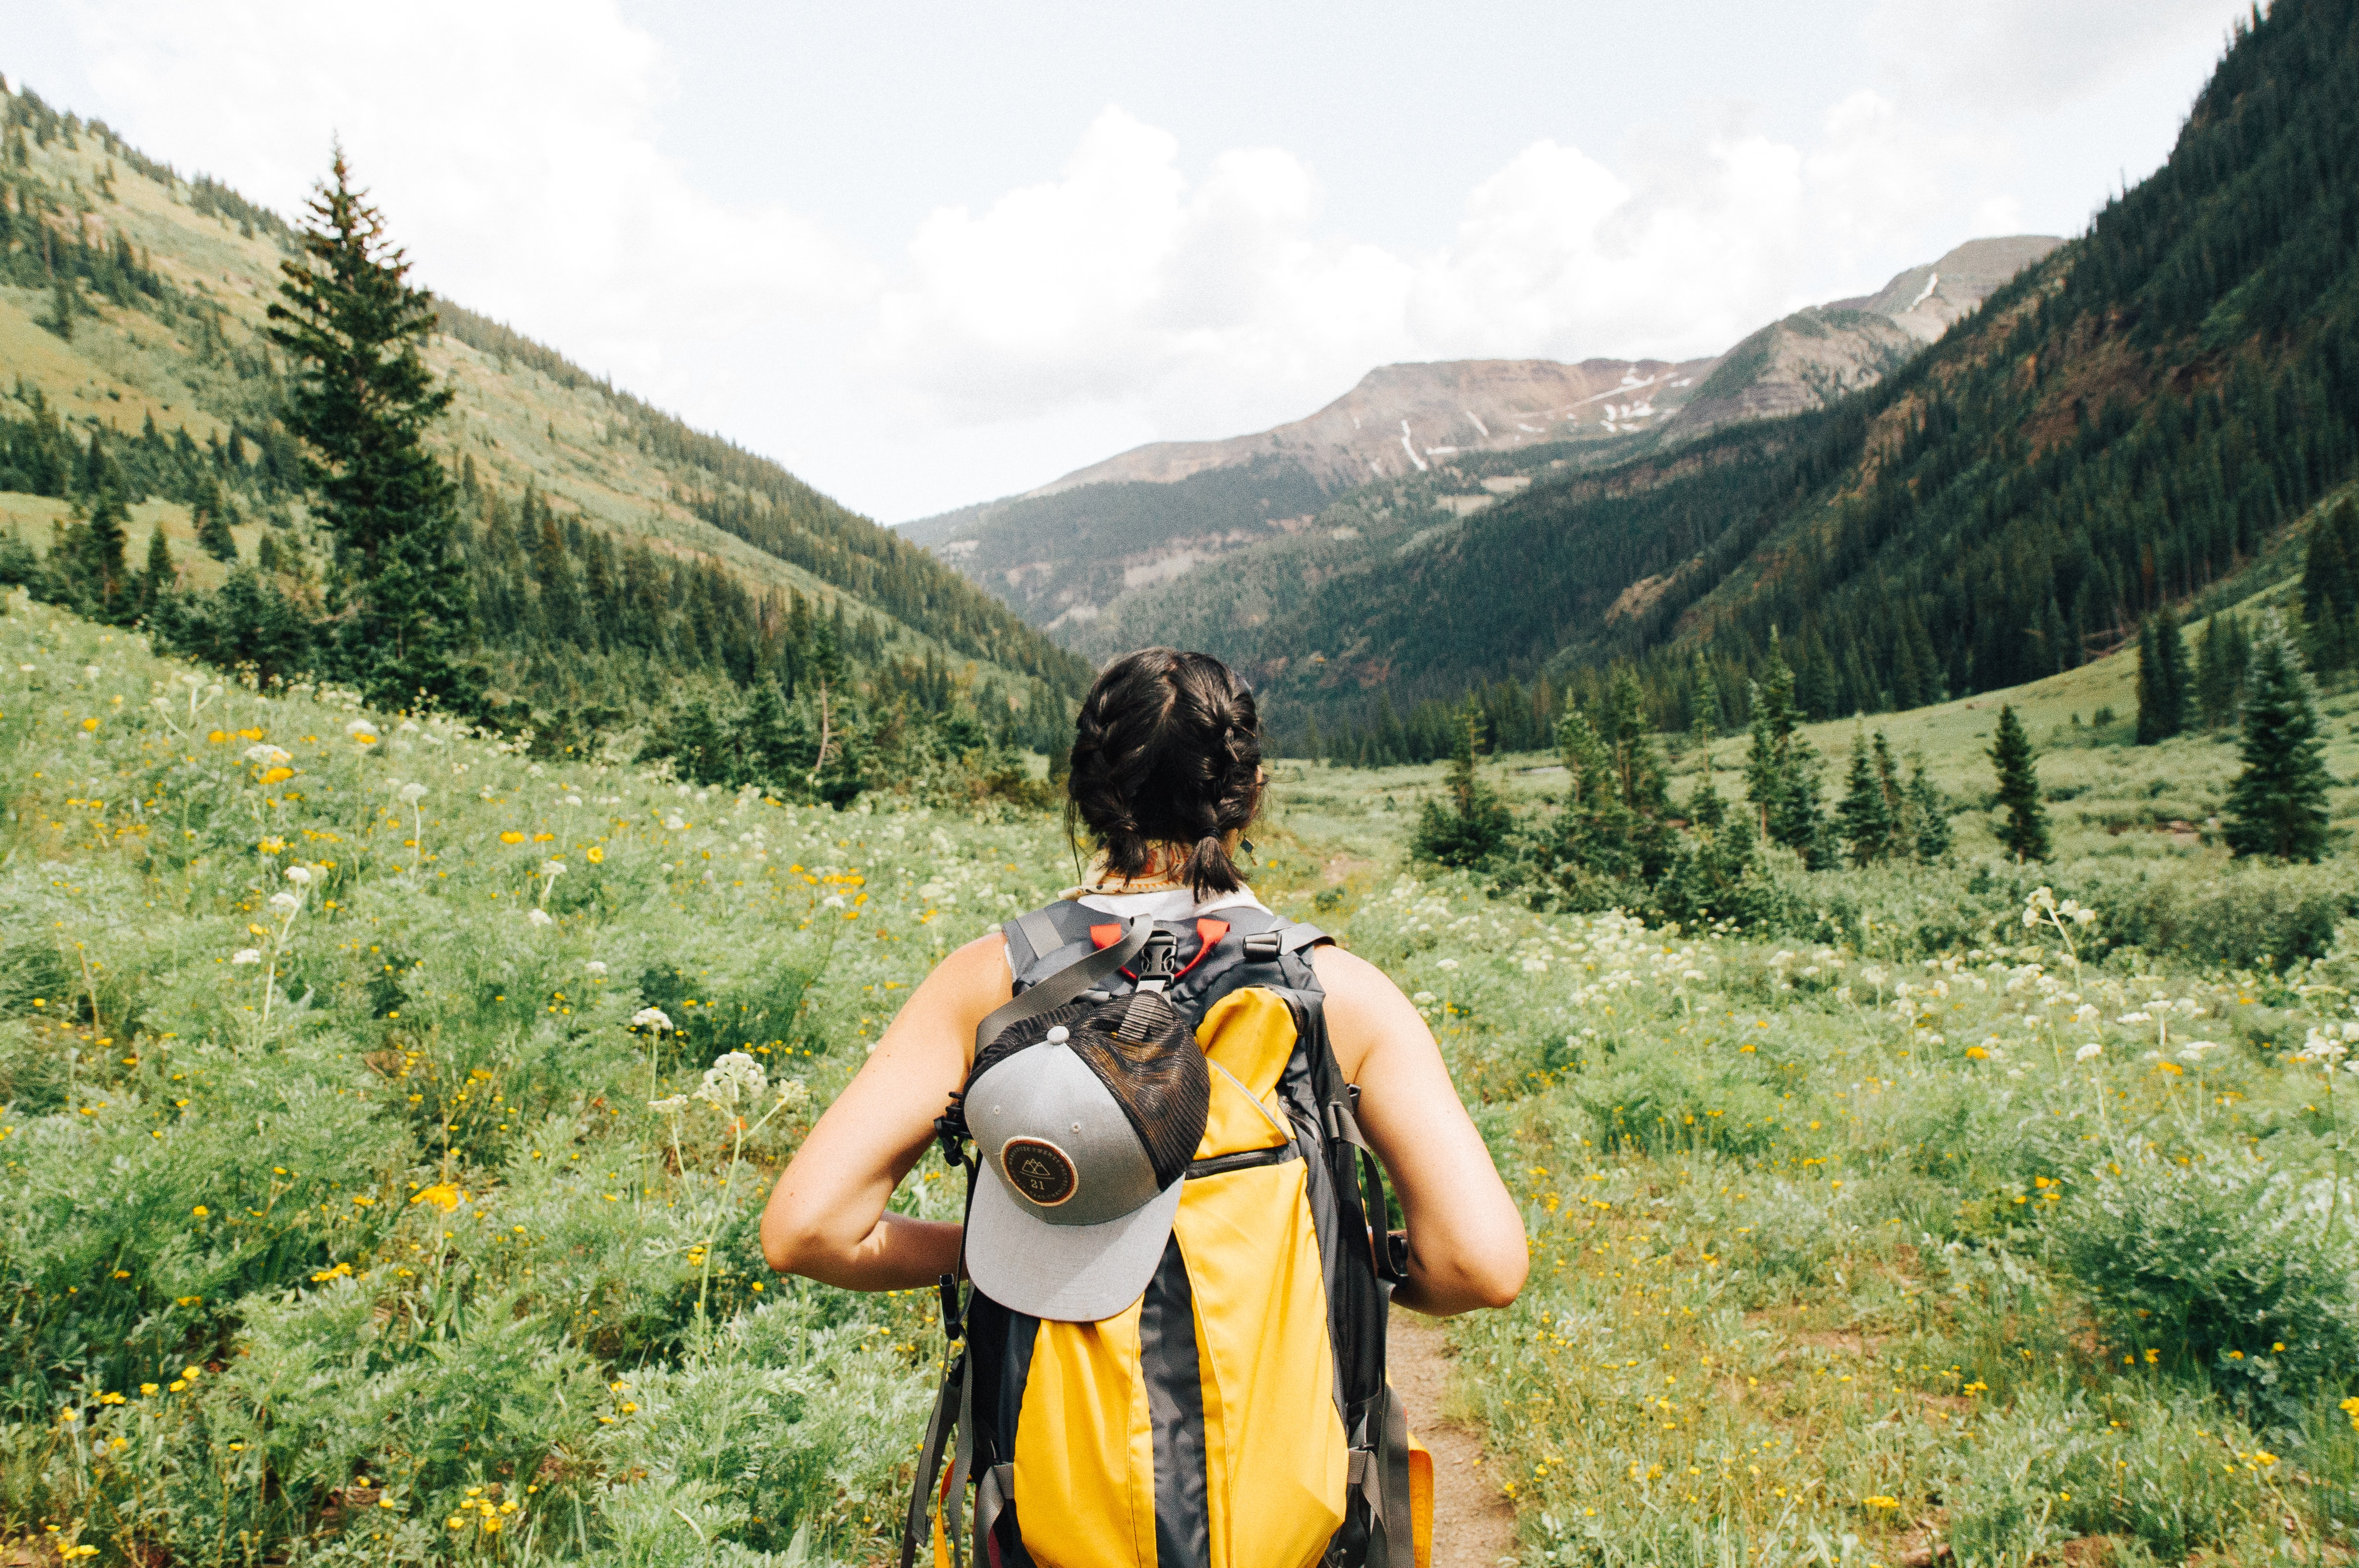 4 Sustainable Brands That Stood Out at Outdoor Retailer